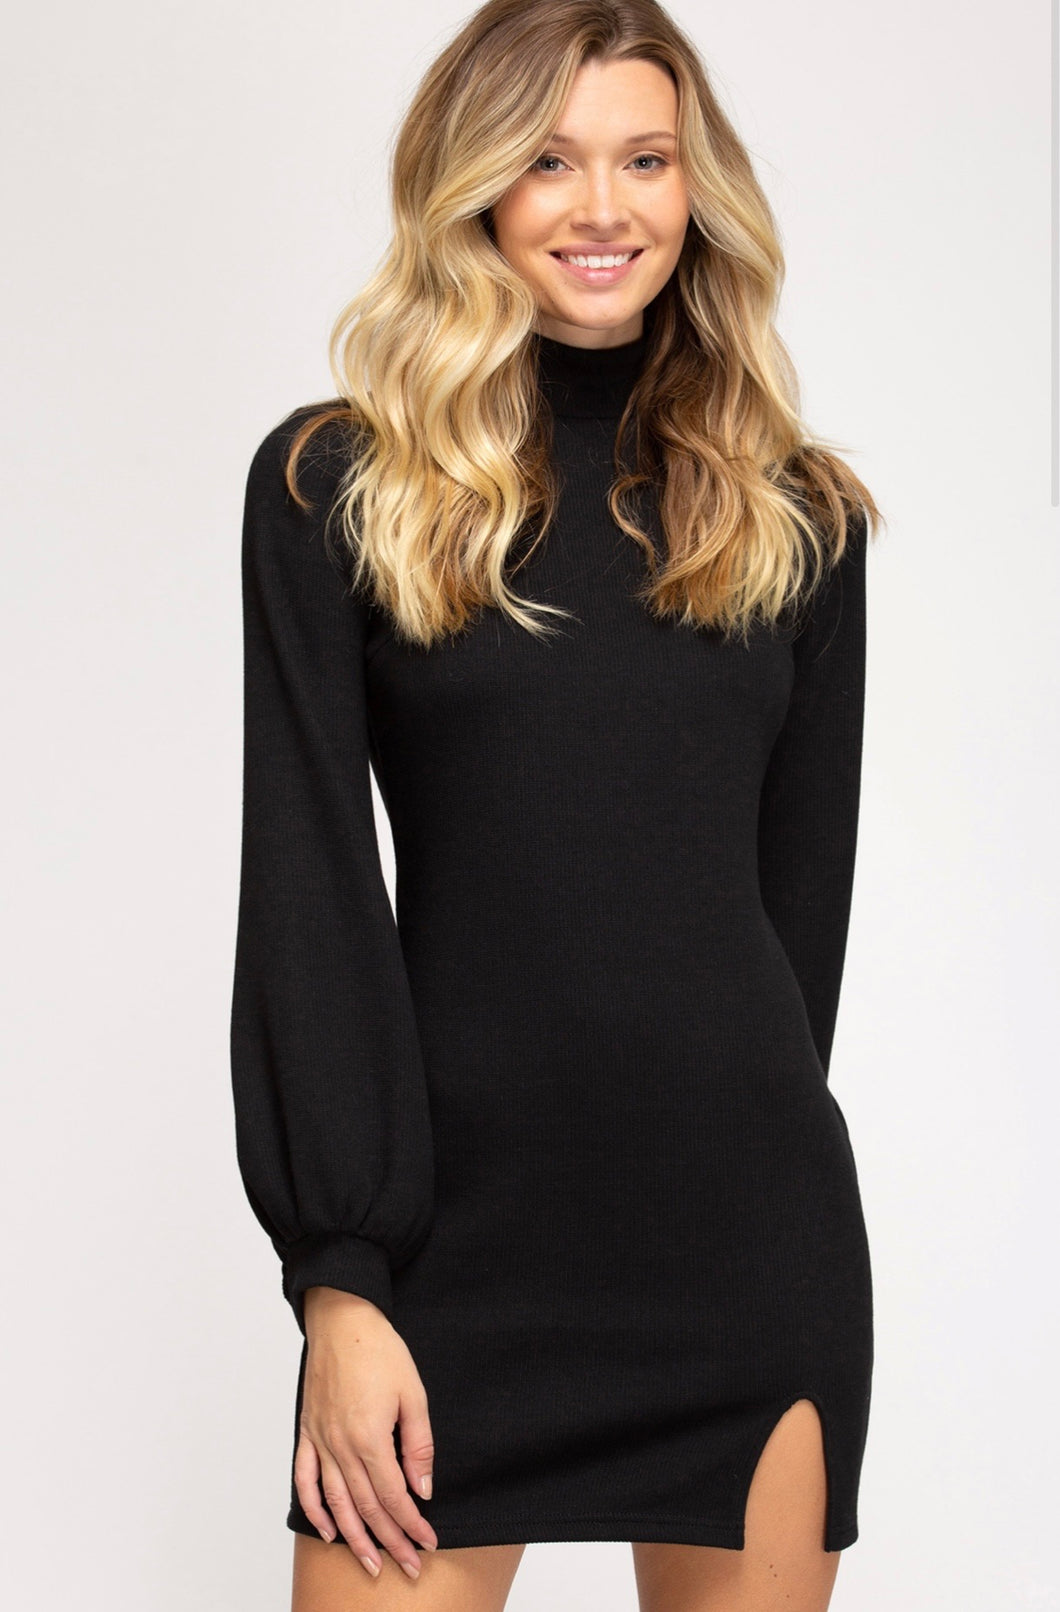 Kallee Dress, Black